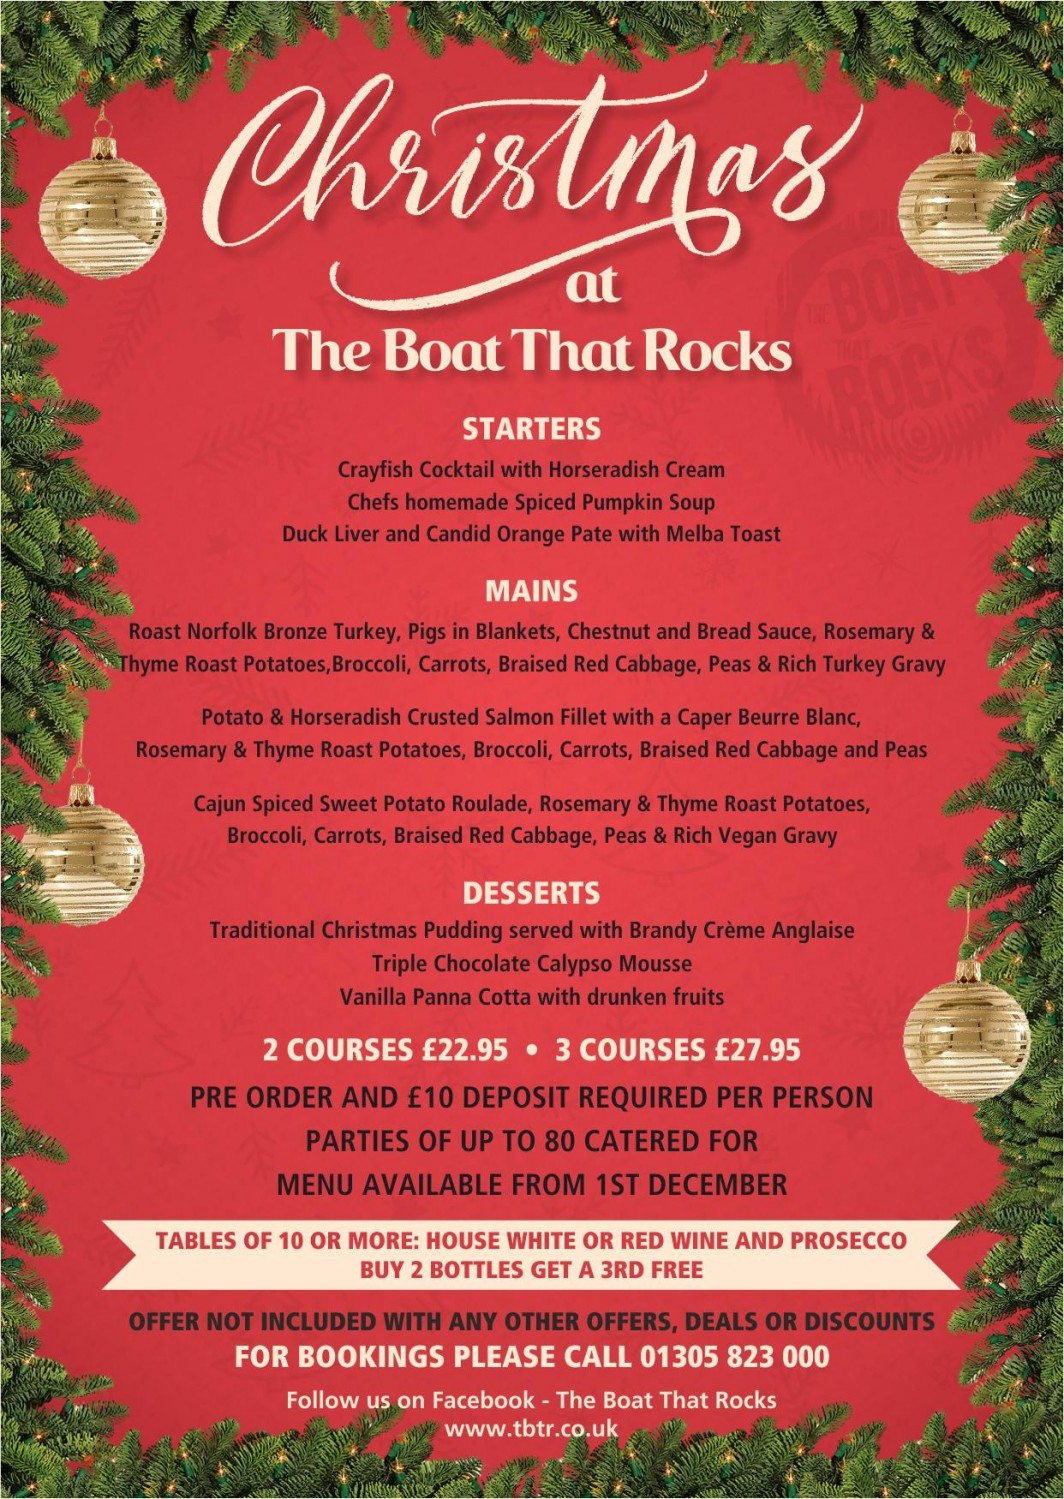 Christmas at The Boat That Rocks